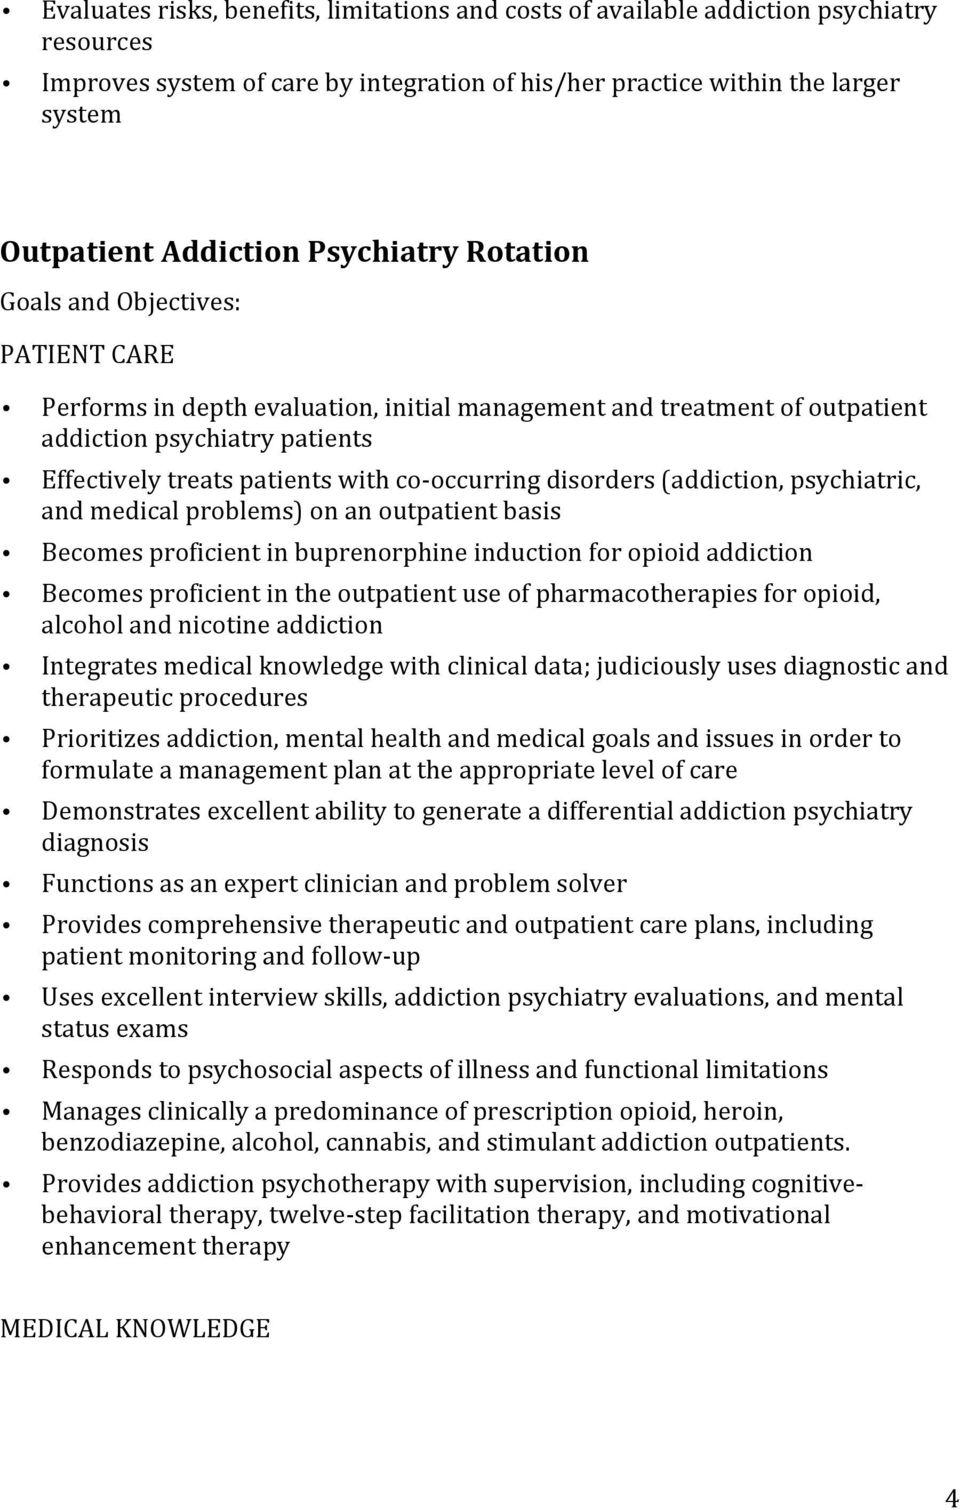 occurring disorders (addiction, psychiatric, and medical problems) on an outpatient basis Becomes proficient in buprenorphine induction for opioid addiction Becomes proficient in the outpatient use